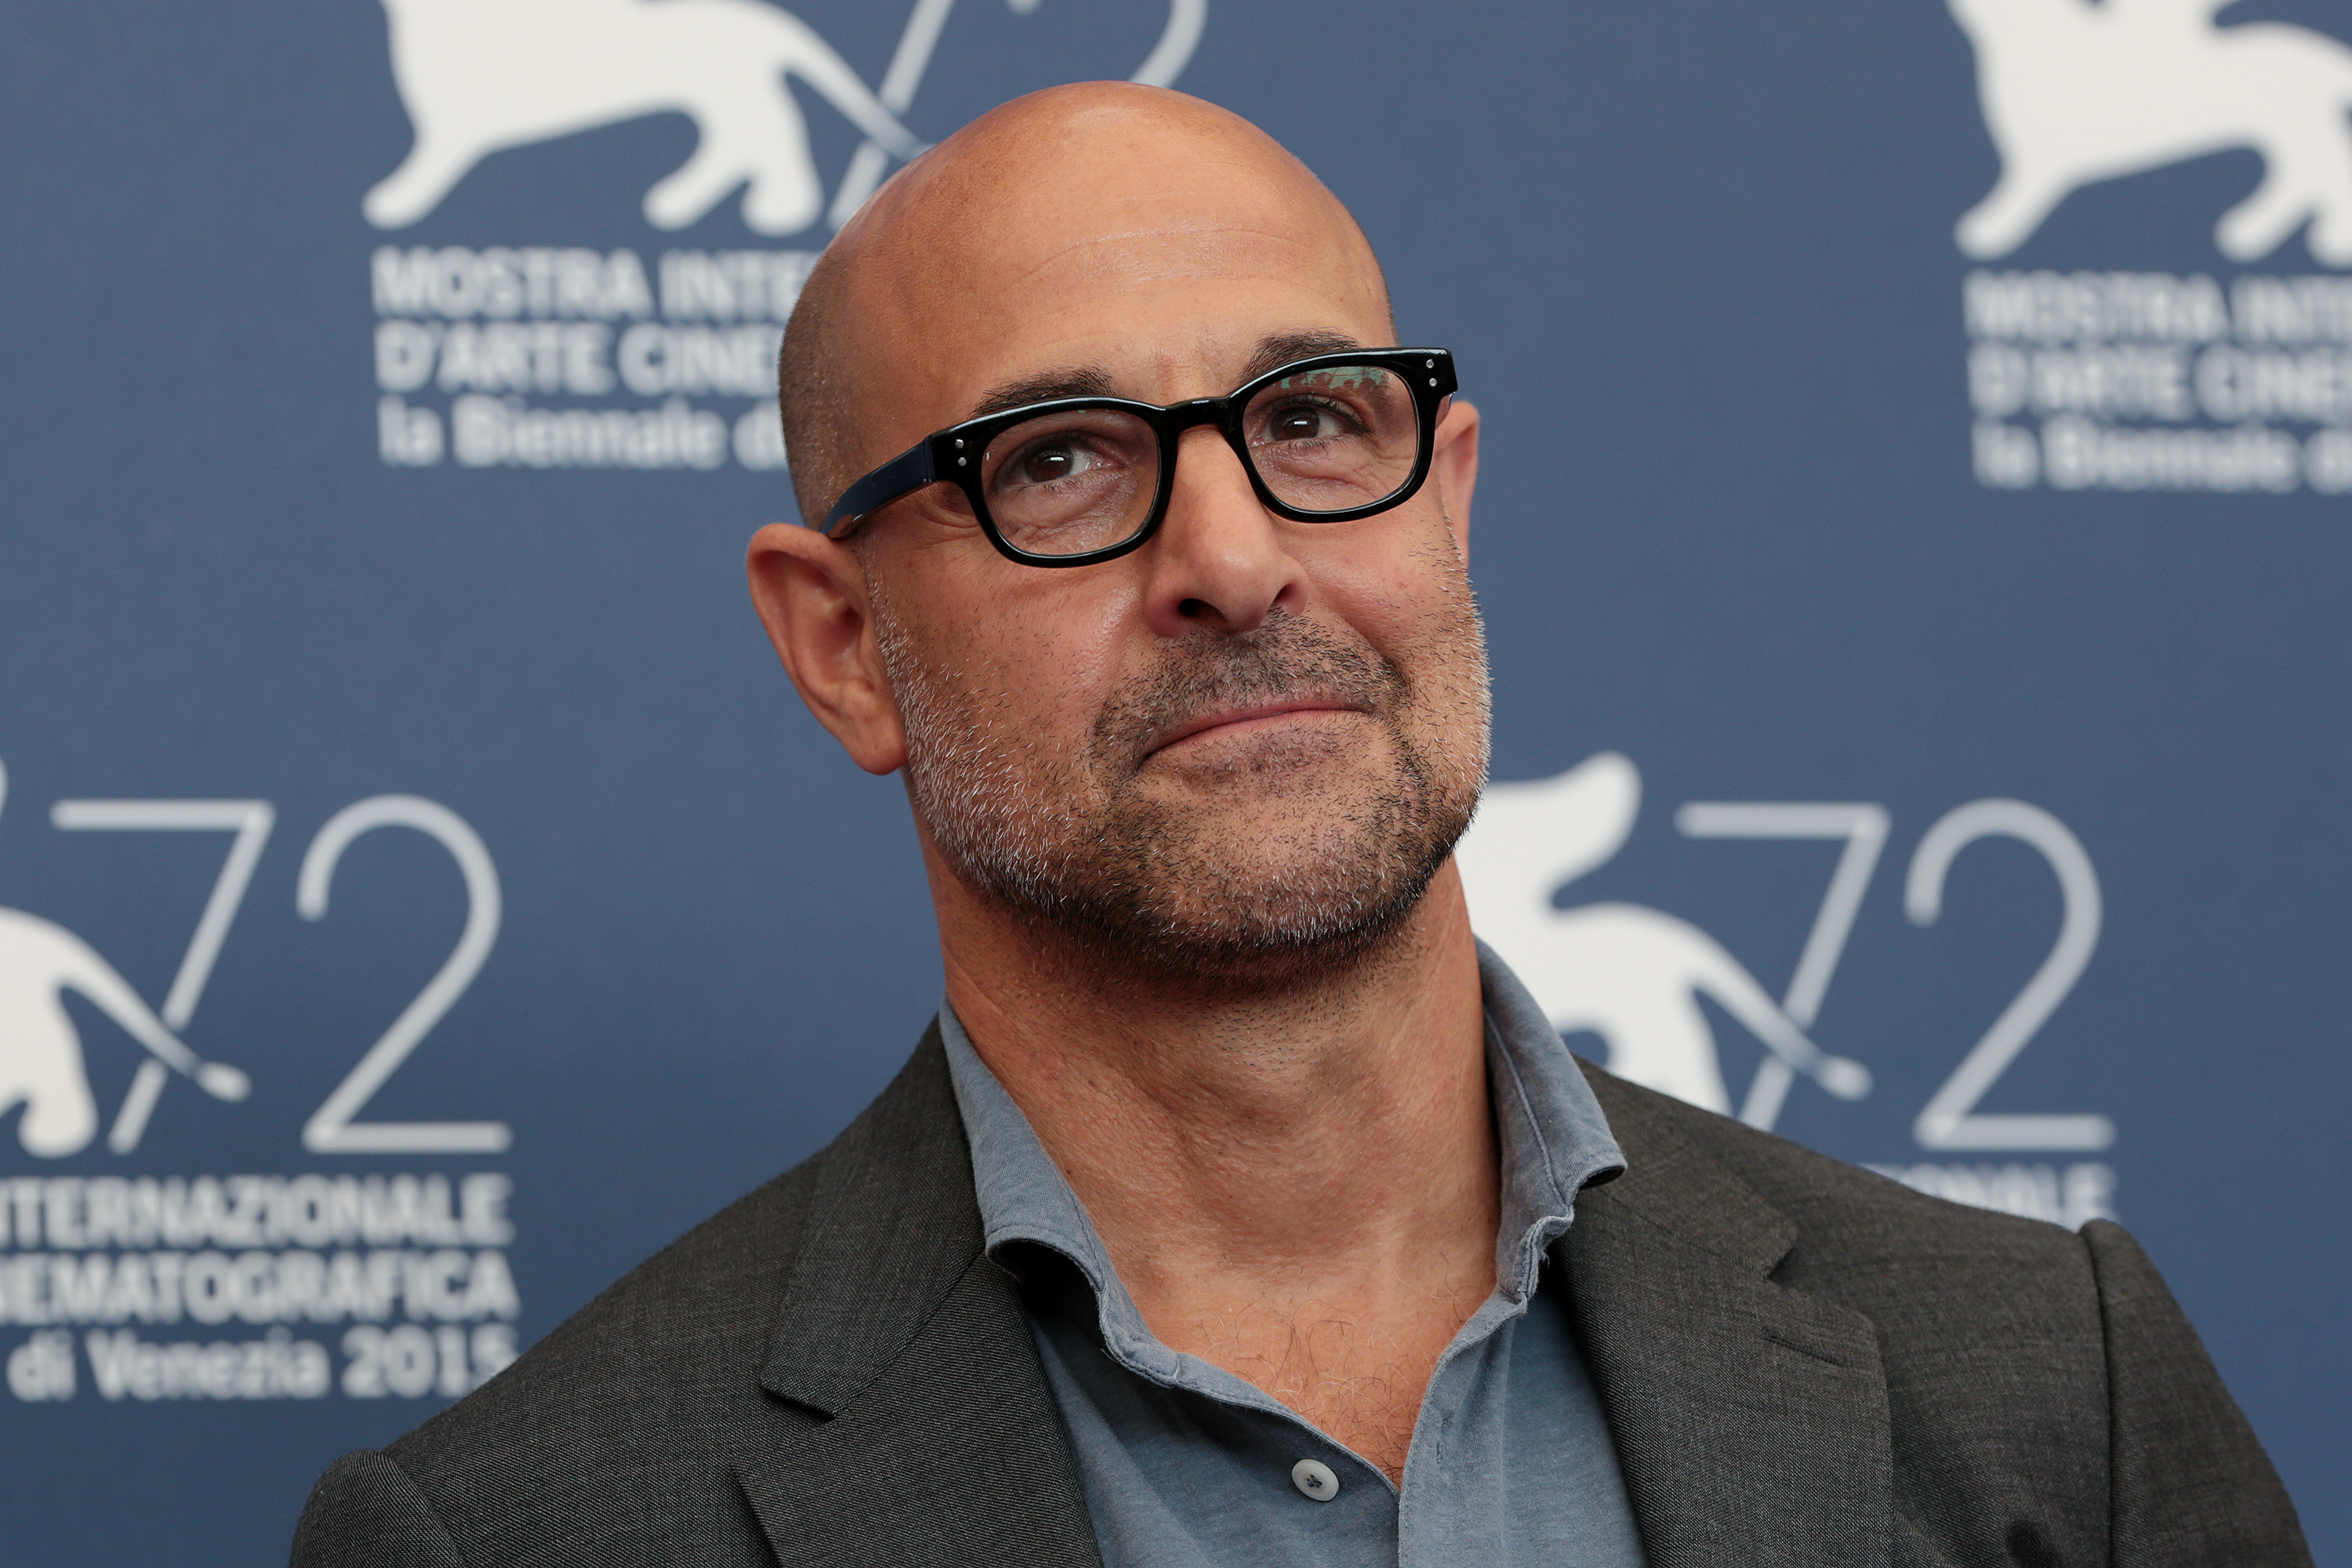 Stanley Tucci wearing glasses, a collared shirt, and a suit jacket.